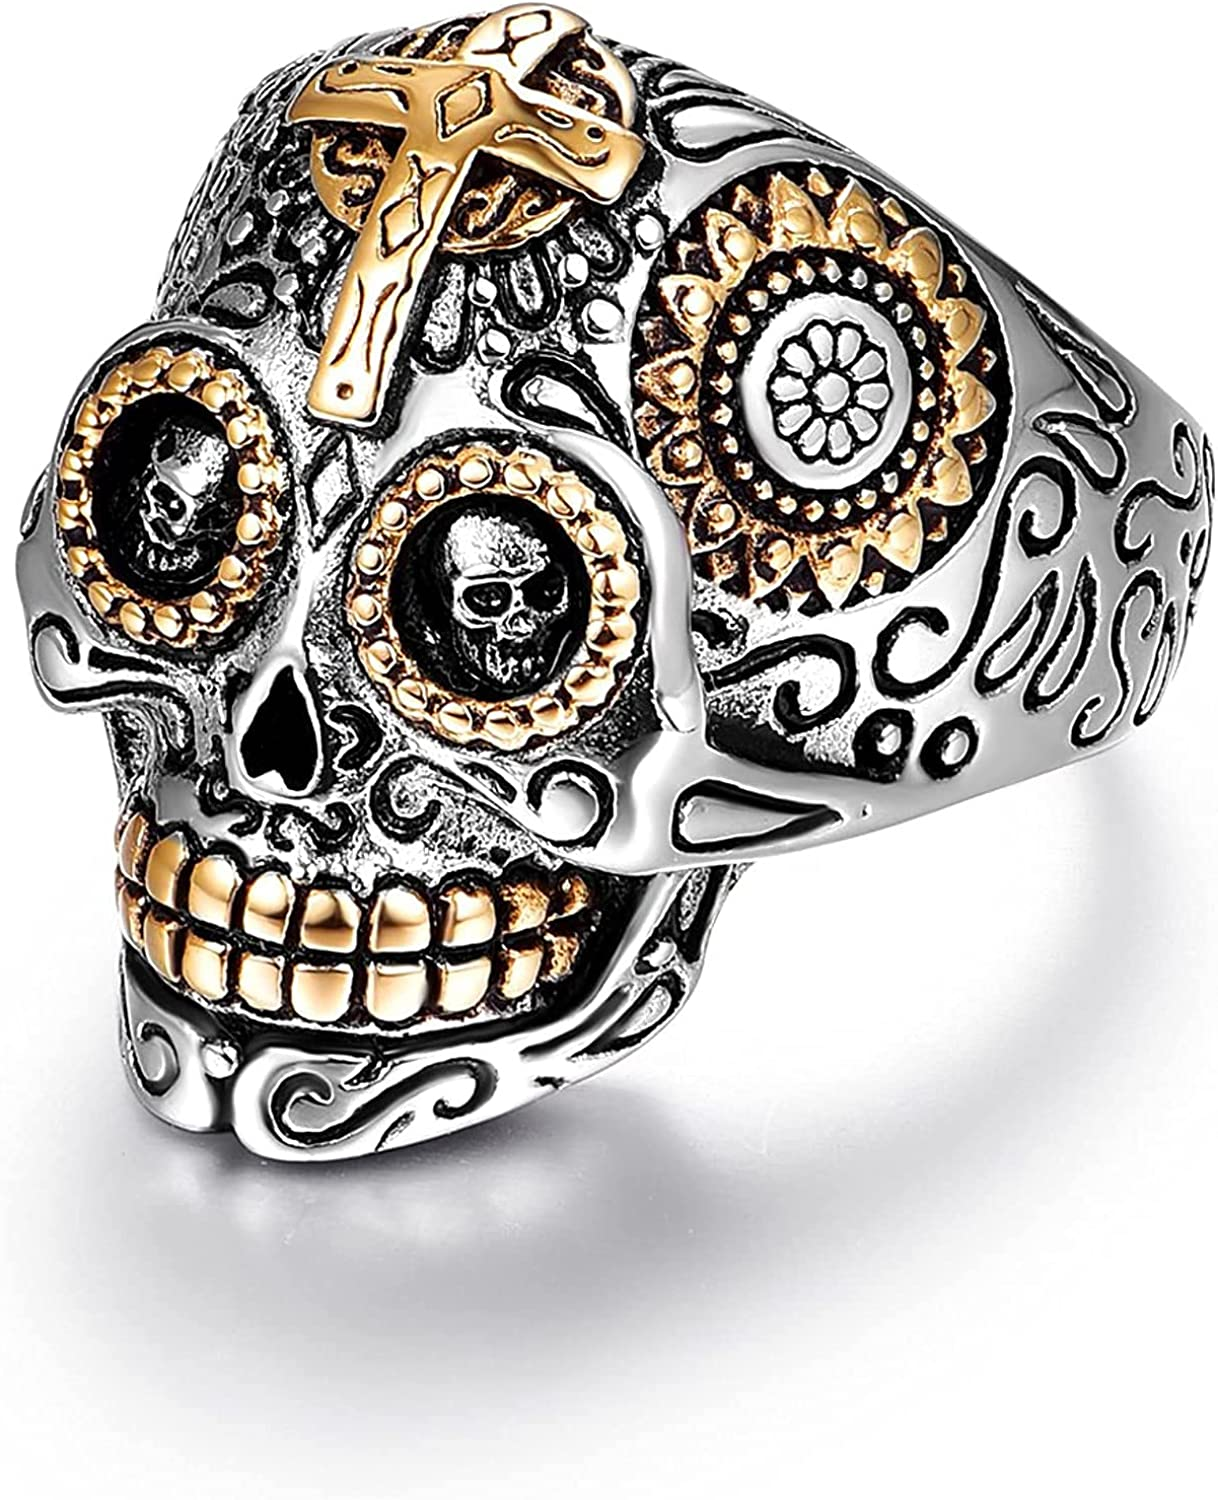 Sugar Skull Rings for Men Women, Stainless Steel Day of the Dead Mens Jewelry, Cool Biker Gothic Ring Christmas Gifts